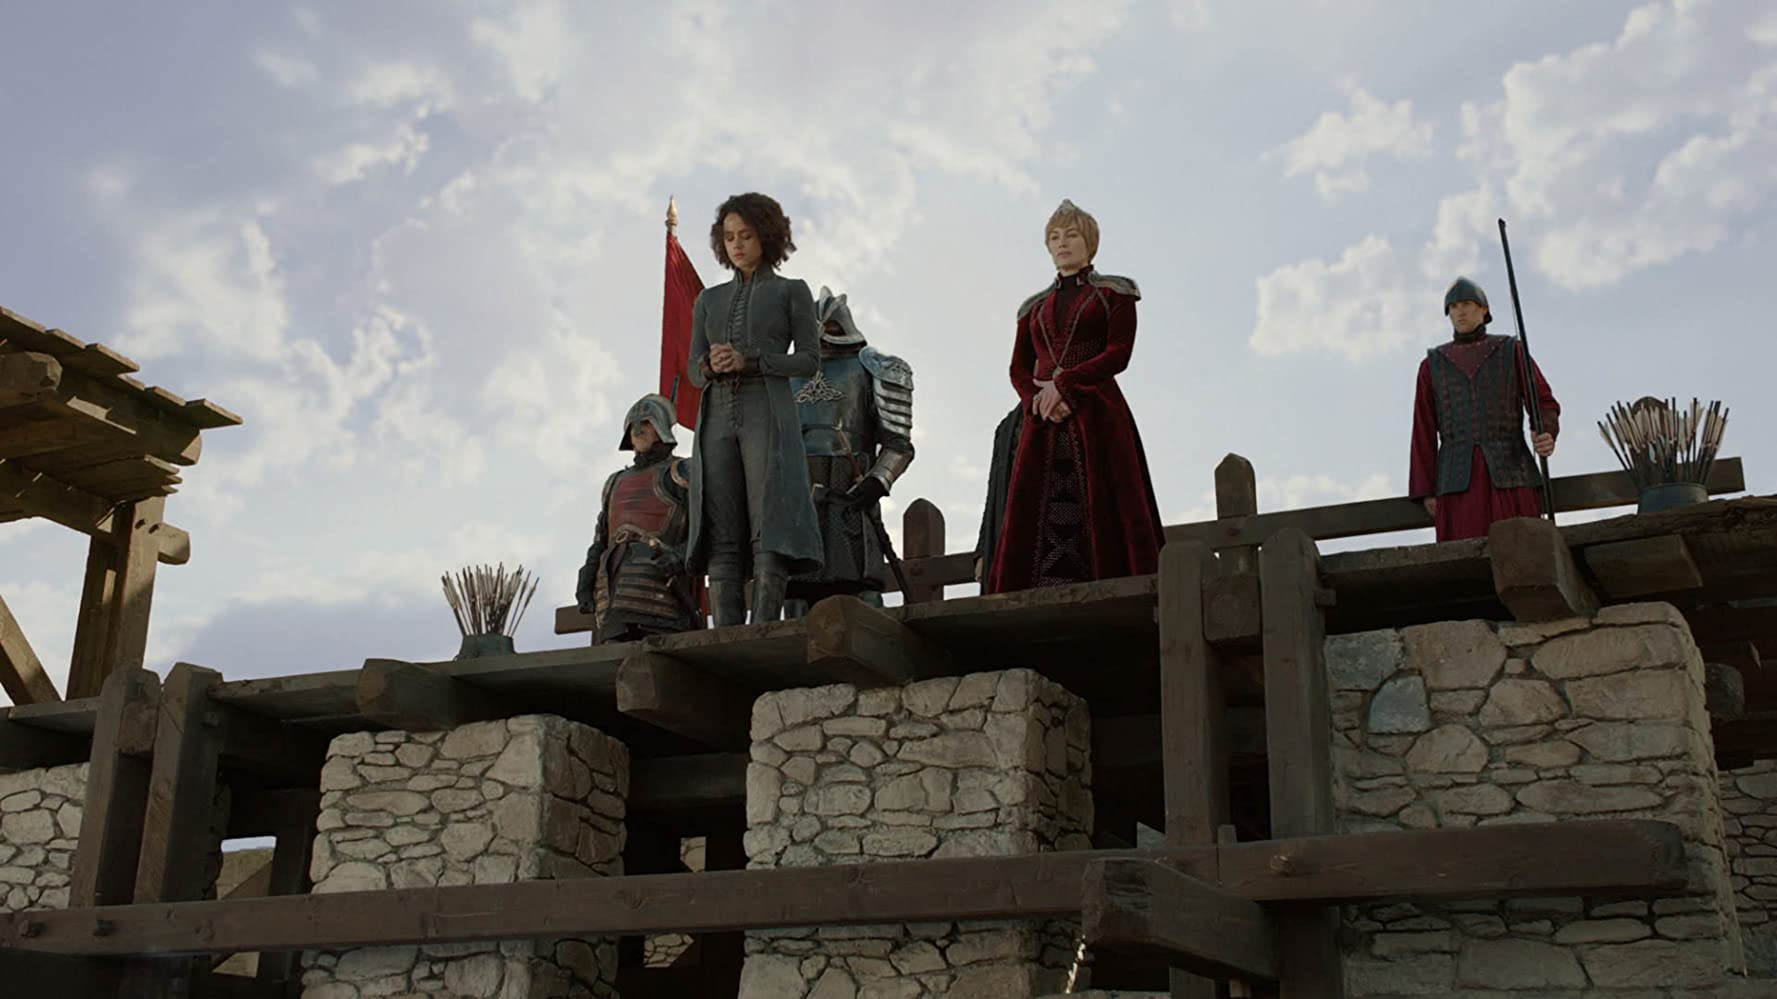 Lena Headey, Nathalie Emmanuel, and Hafþór Júlíus Björnsson in Game of Thrones (2011)